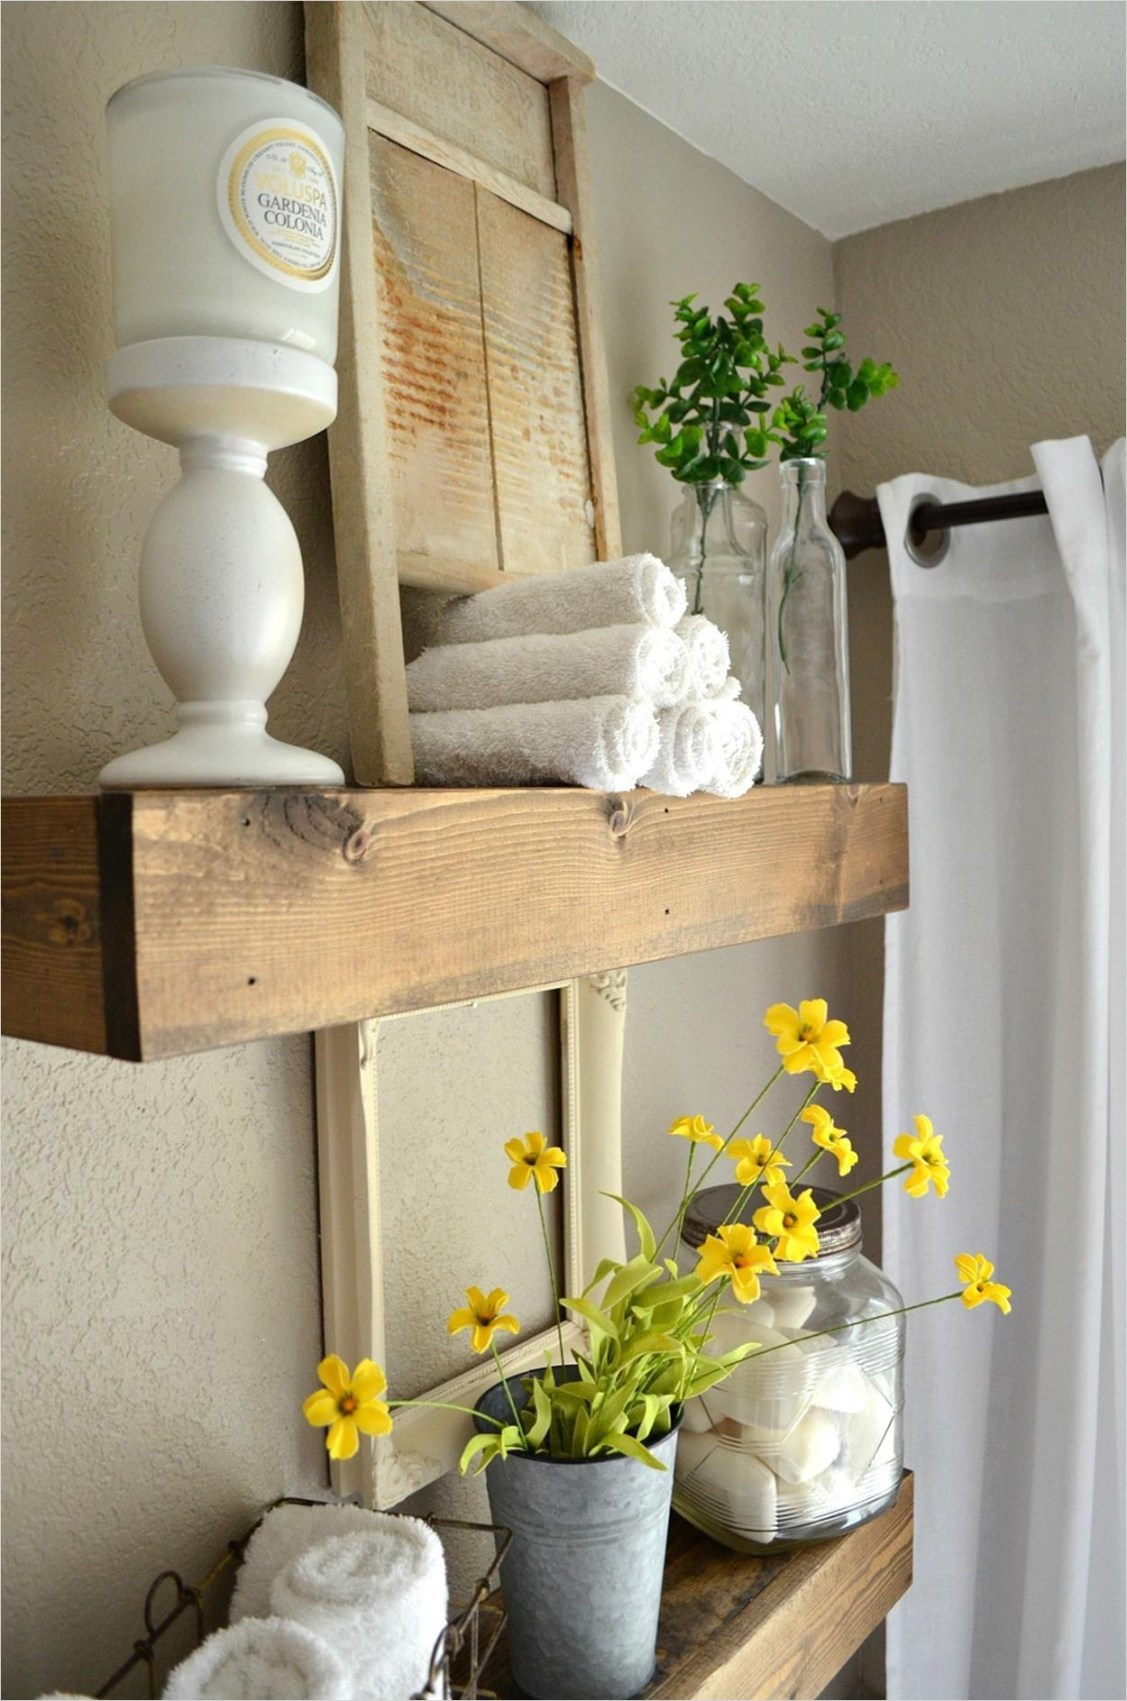 41 Beautiful Farmhouse Bathroom Accessories Ideas 15 26 Charming Farmhouse Bathroom Accessories Ideas Decorelated 2